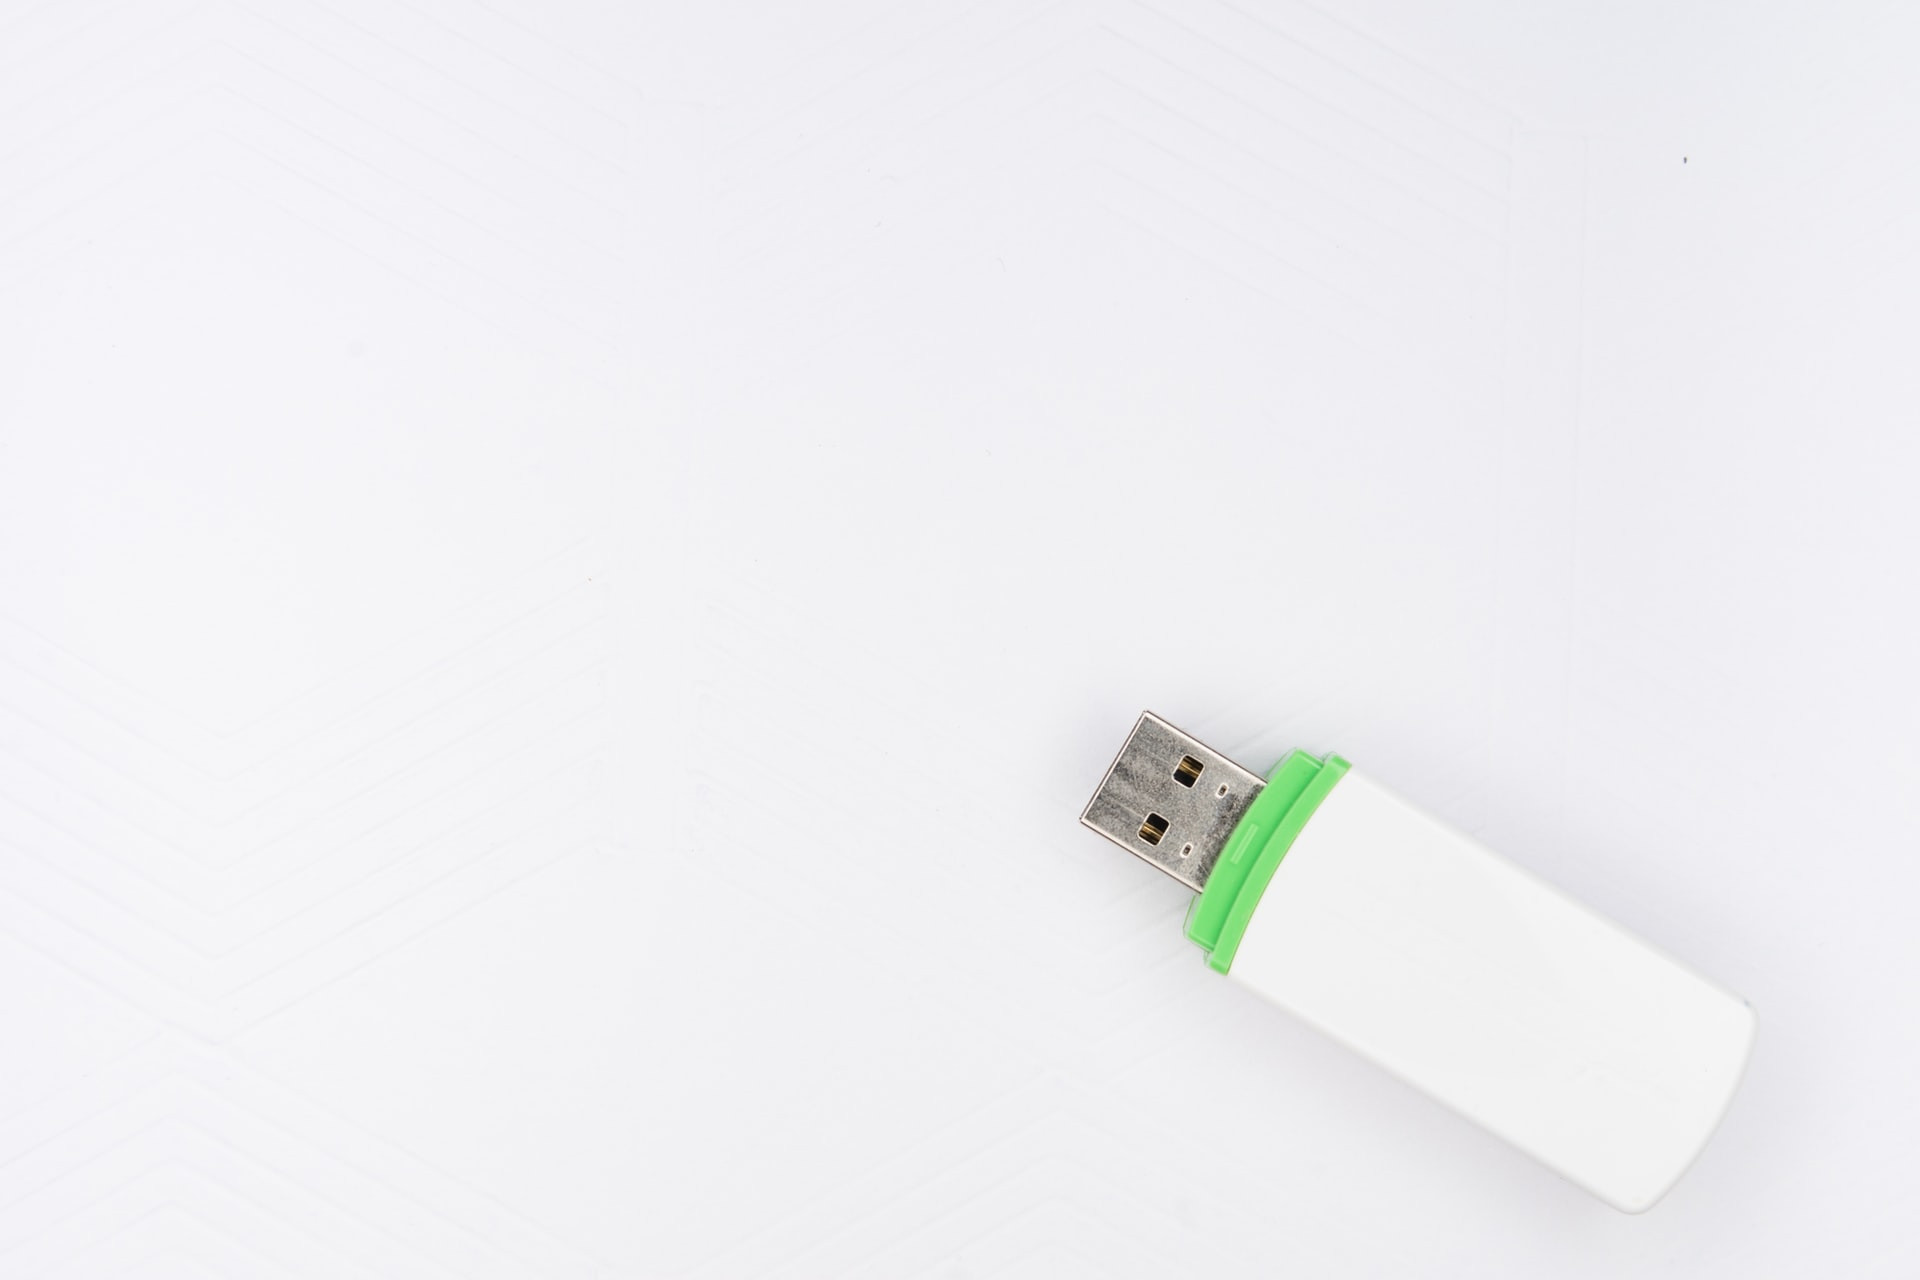 flash drive, white background